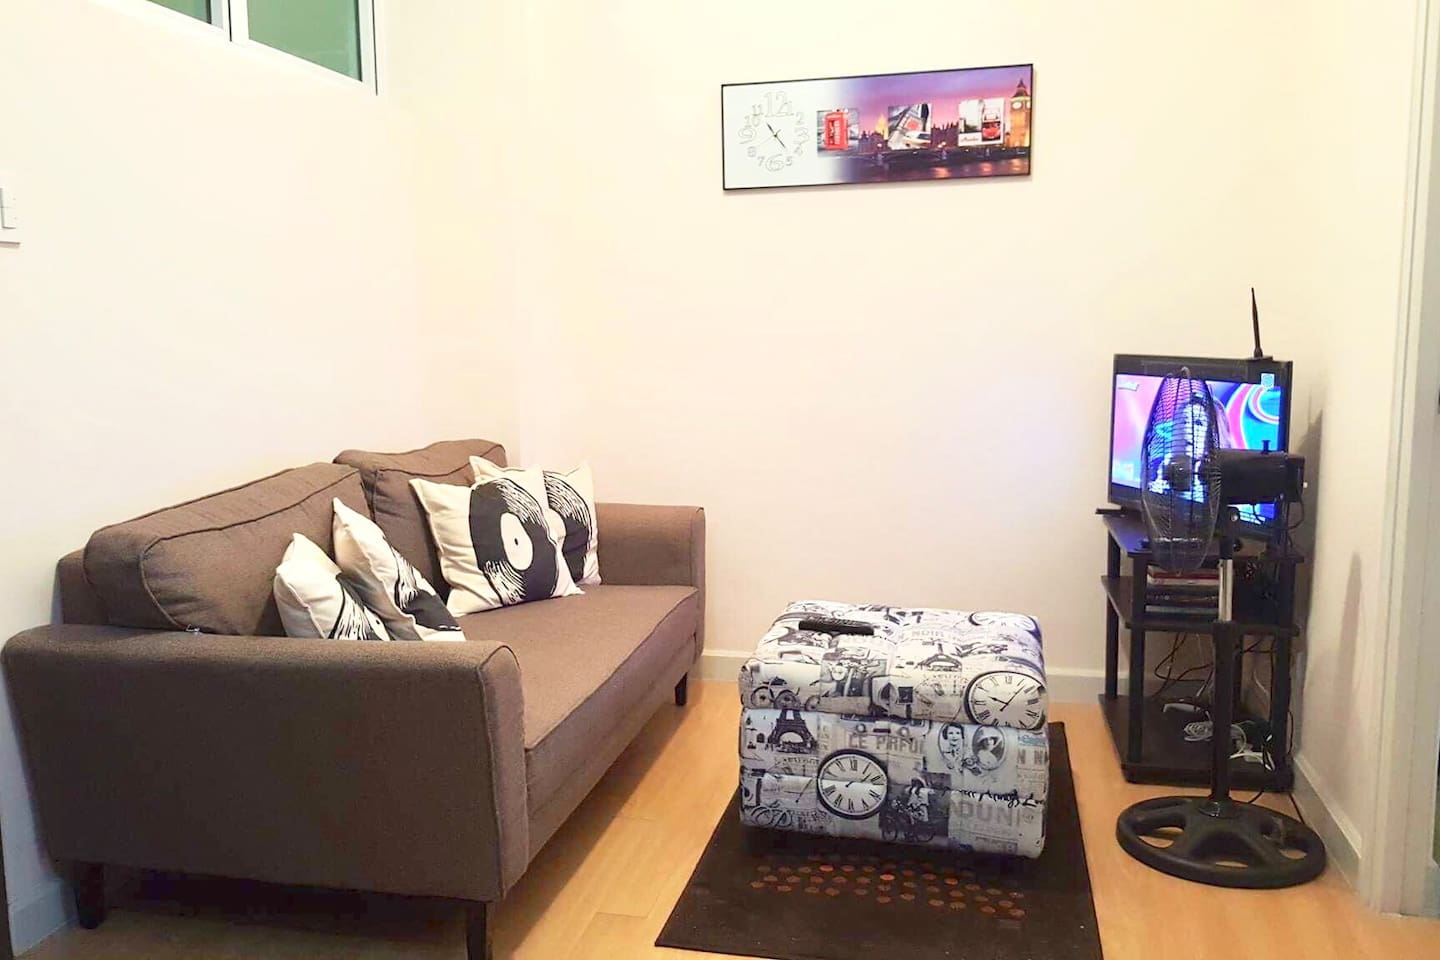 The receiving room with a settee, television and a tv box